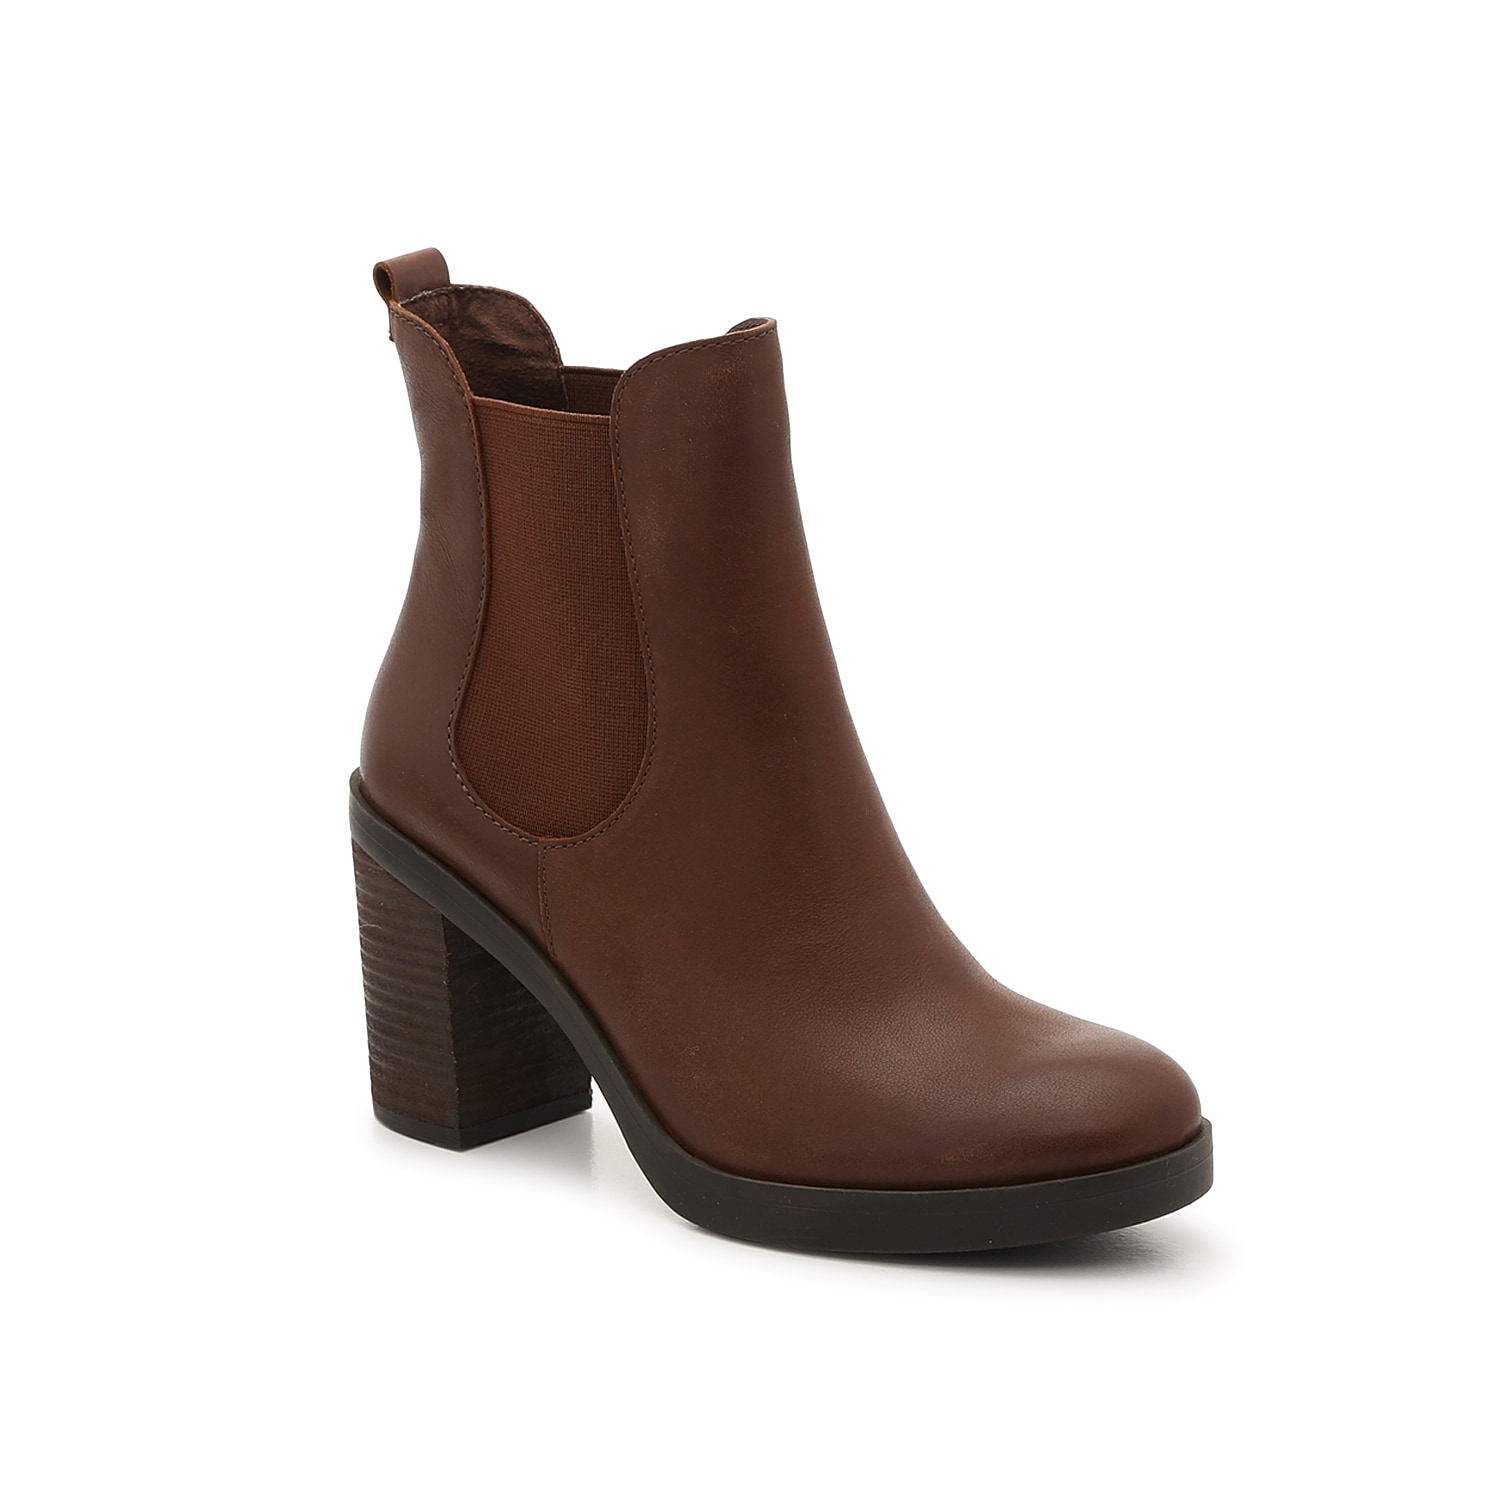 Refresh this seasons shoe collection with the After Hours chelsea boot from Crown Vintage. This ankle boot is fashioned with a chunky stacked heel and dual gore accents that will go great with ankle jeans and a graphic tee!